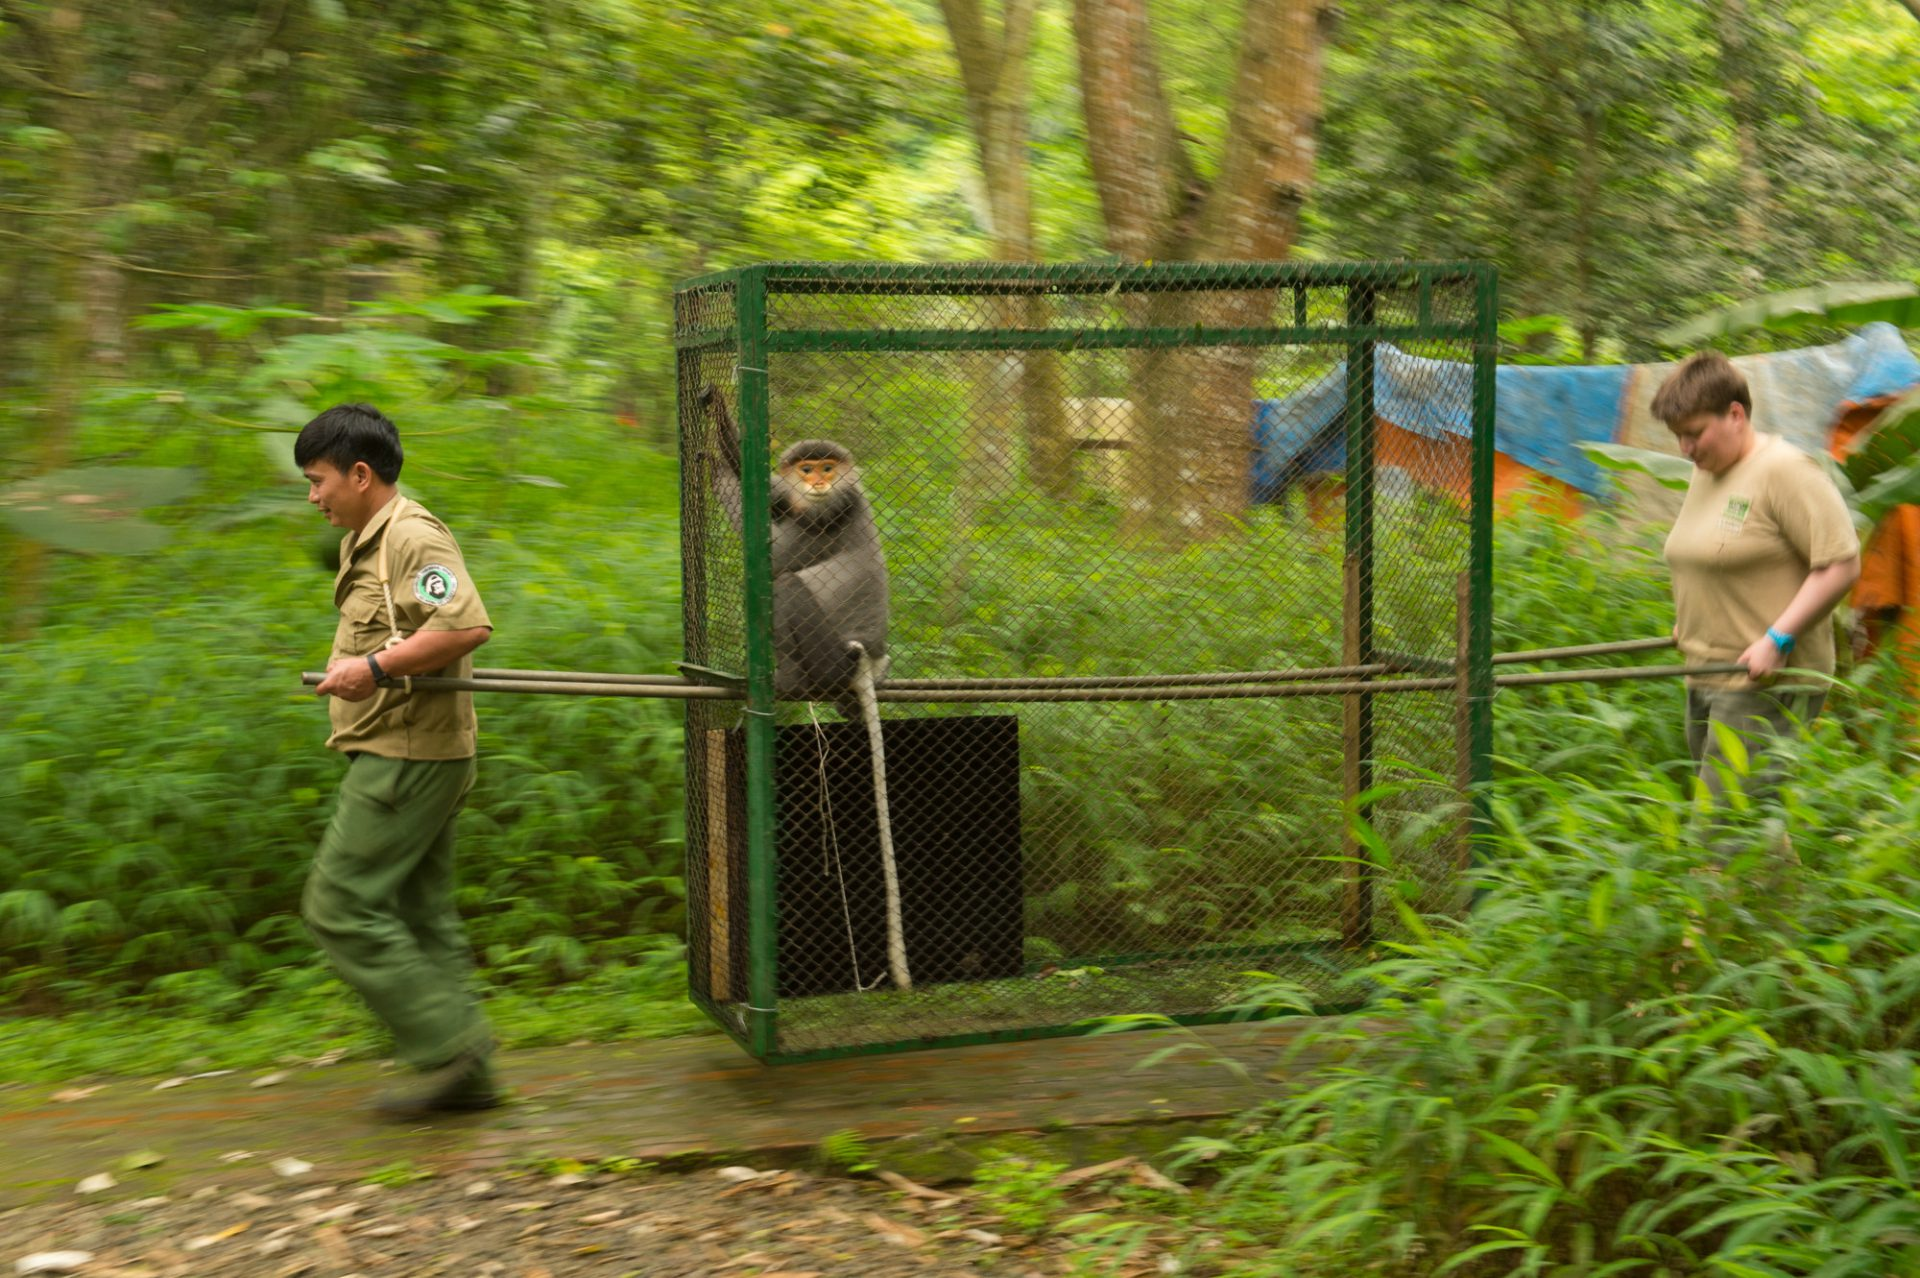 Staff moving a grey-shanked douc langur (Pygathrix cinerea) at the Endangered Primate Rescue Center in Cuc Phuong National Park, Vietnam. This animal's name is Eric.